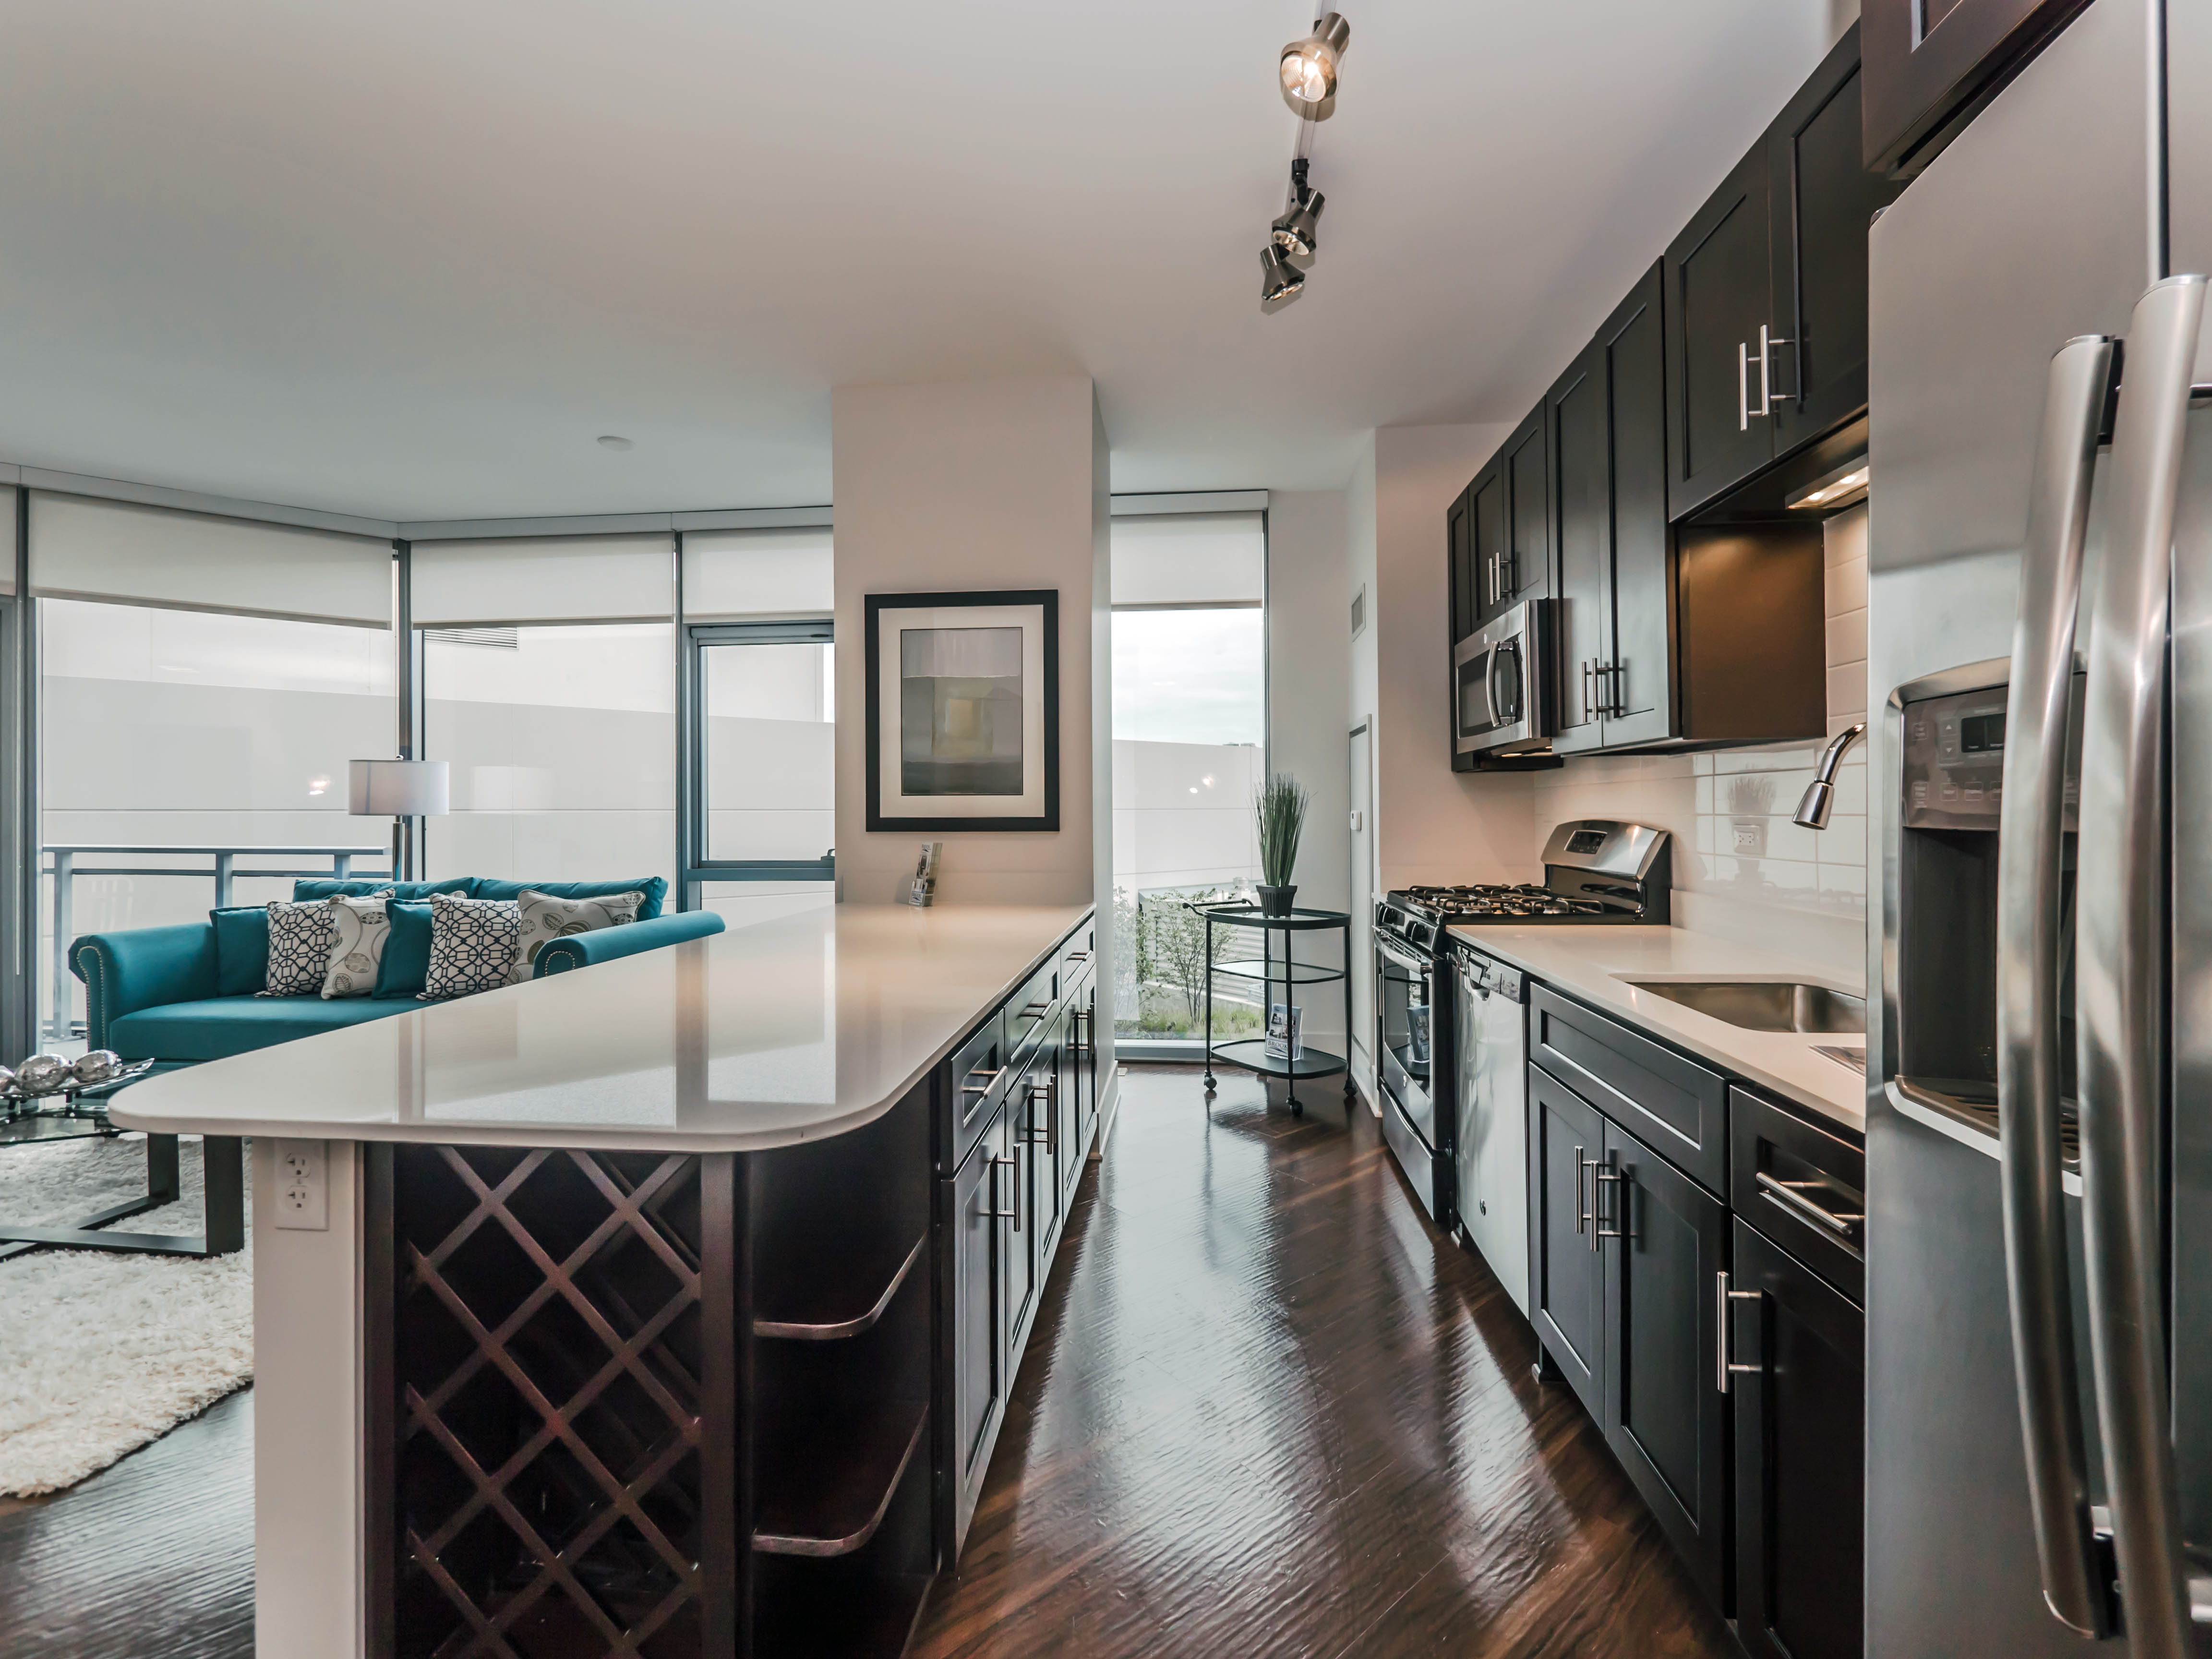 The. Tour a one bedroom plus den at the new New City apartments   YoChicago